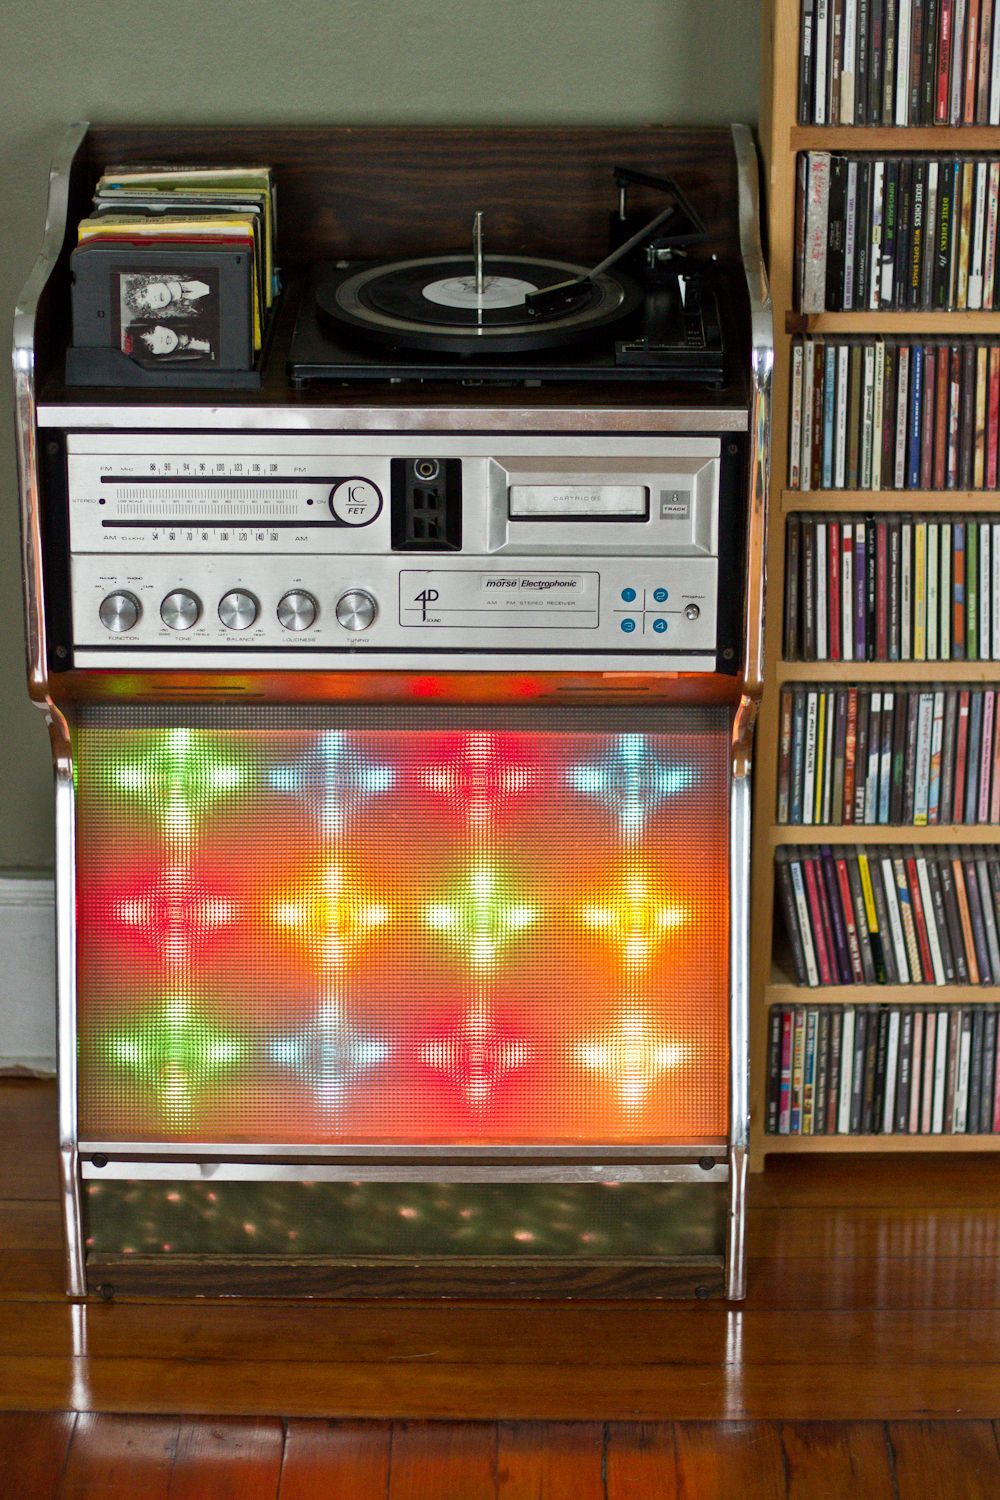 I Had This Exact Record Player When I Was About 12 To 15